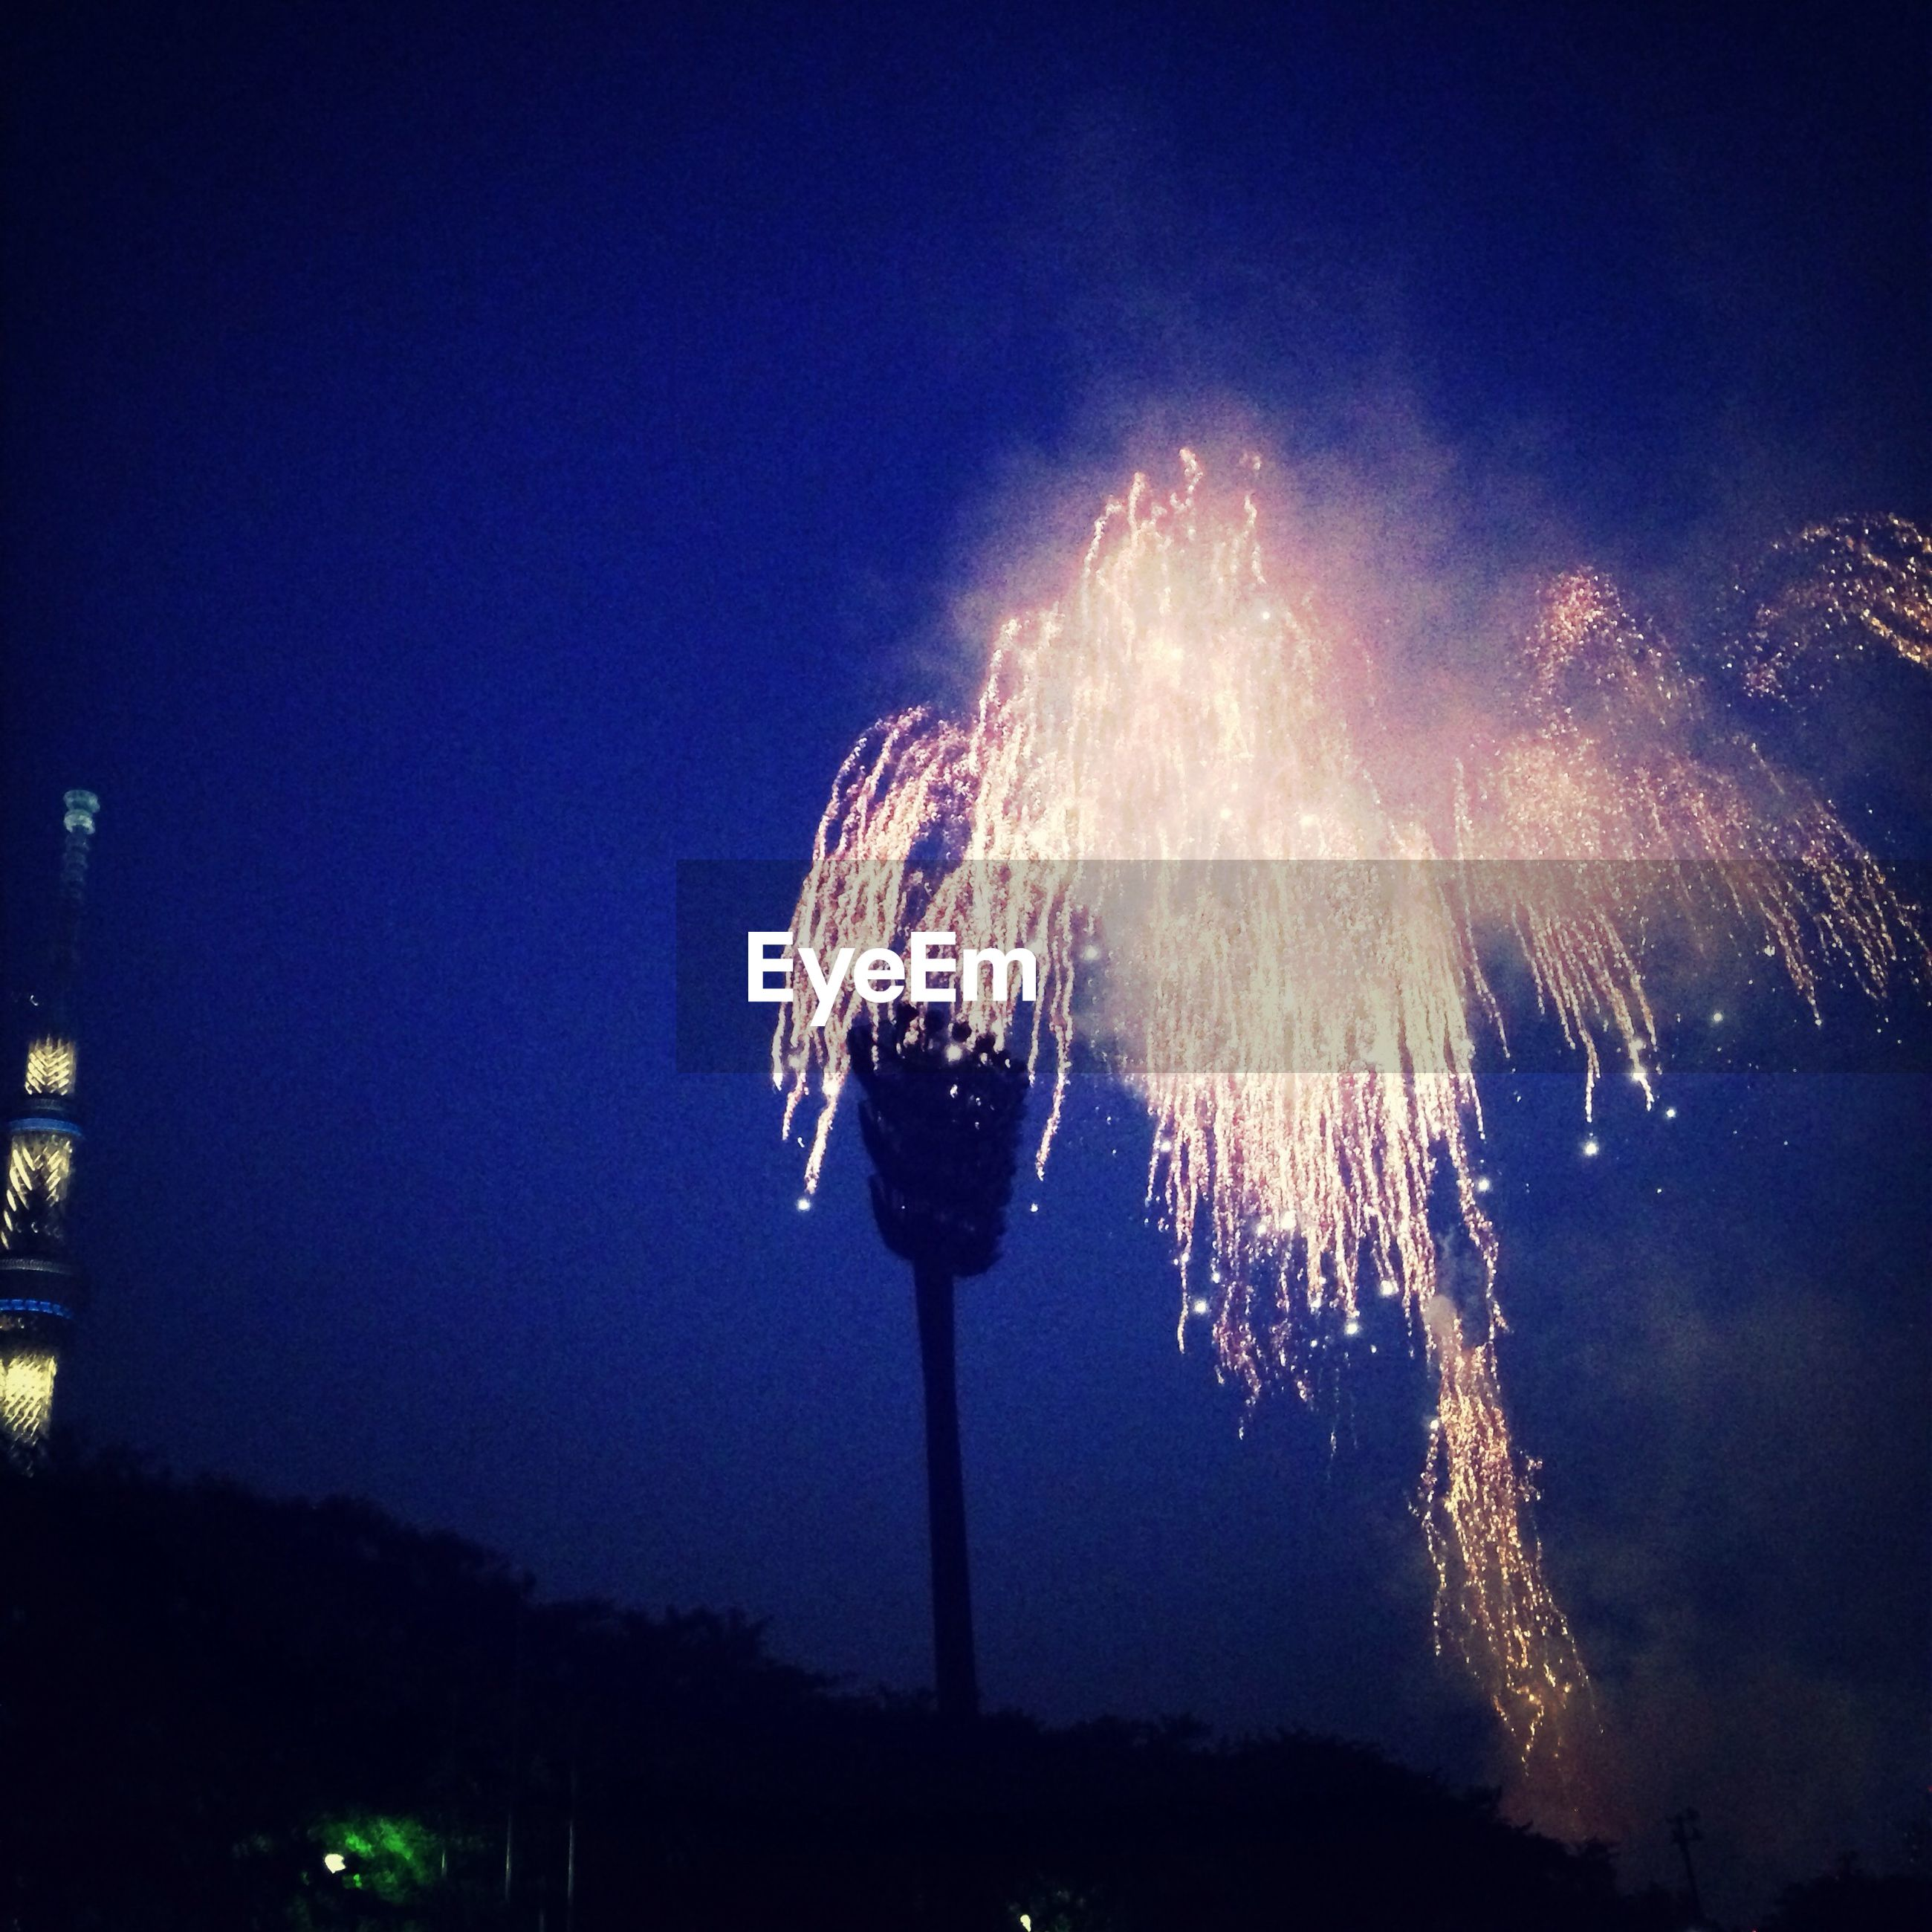 night, illuminated, firework display, long exposure, motion, low angle view, arts culture and entertainment, exploding, firework - man made object, celebration, sparks, sky, glowing, blurred motion, event, building exterior, firework, entertainment, smoke - physical structure, clear sky